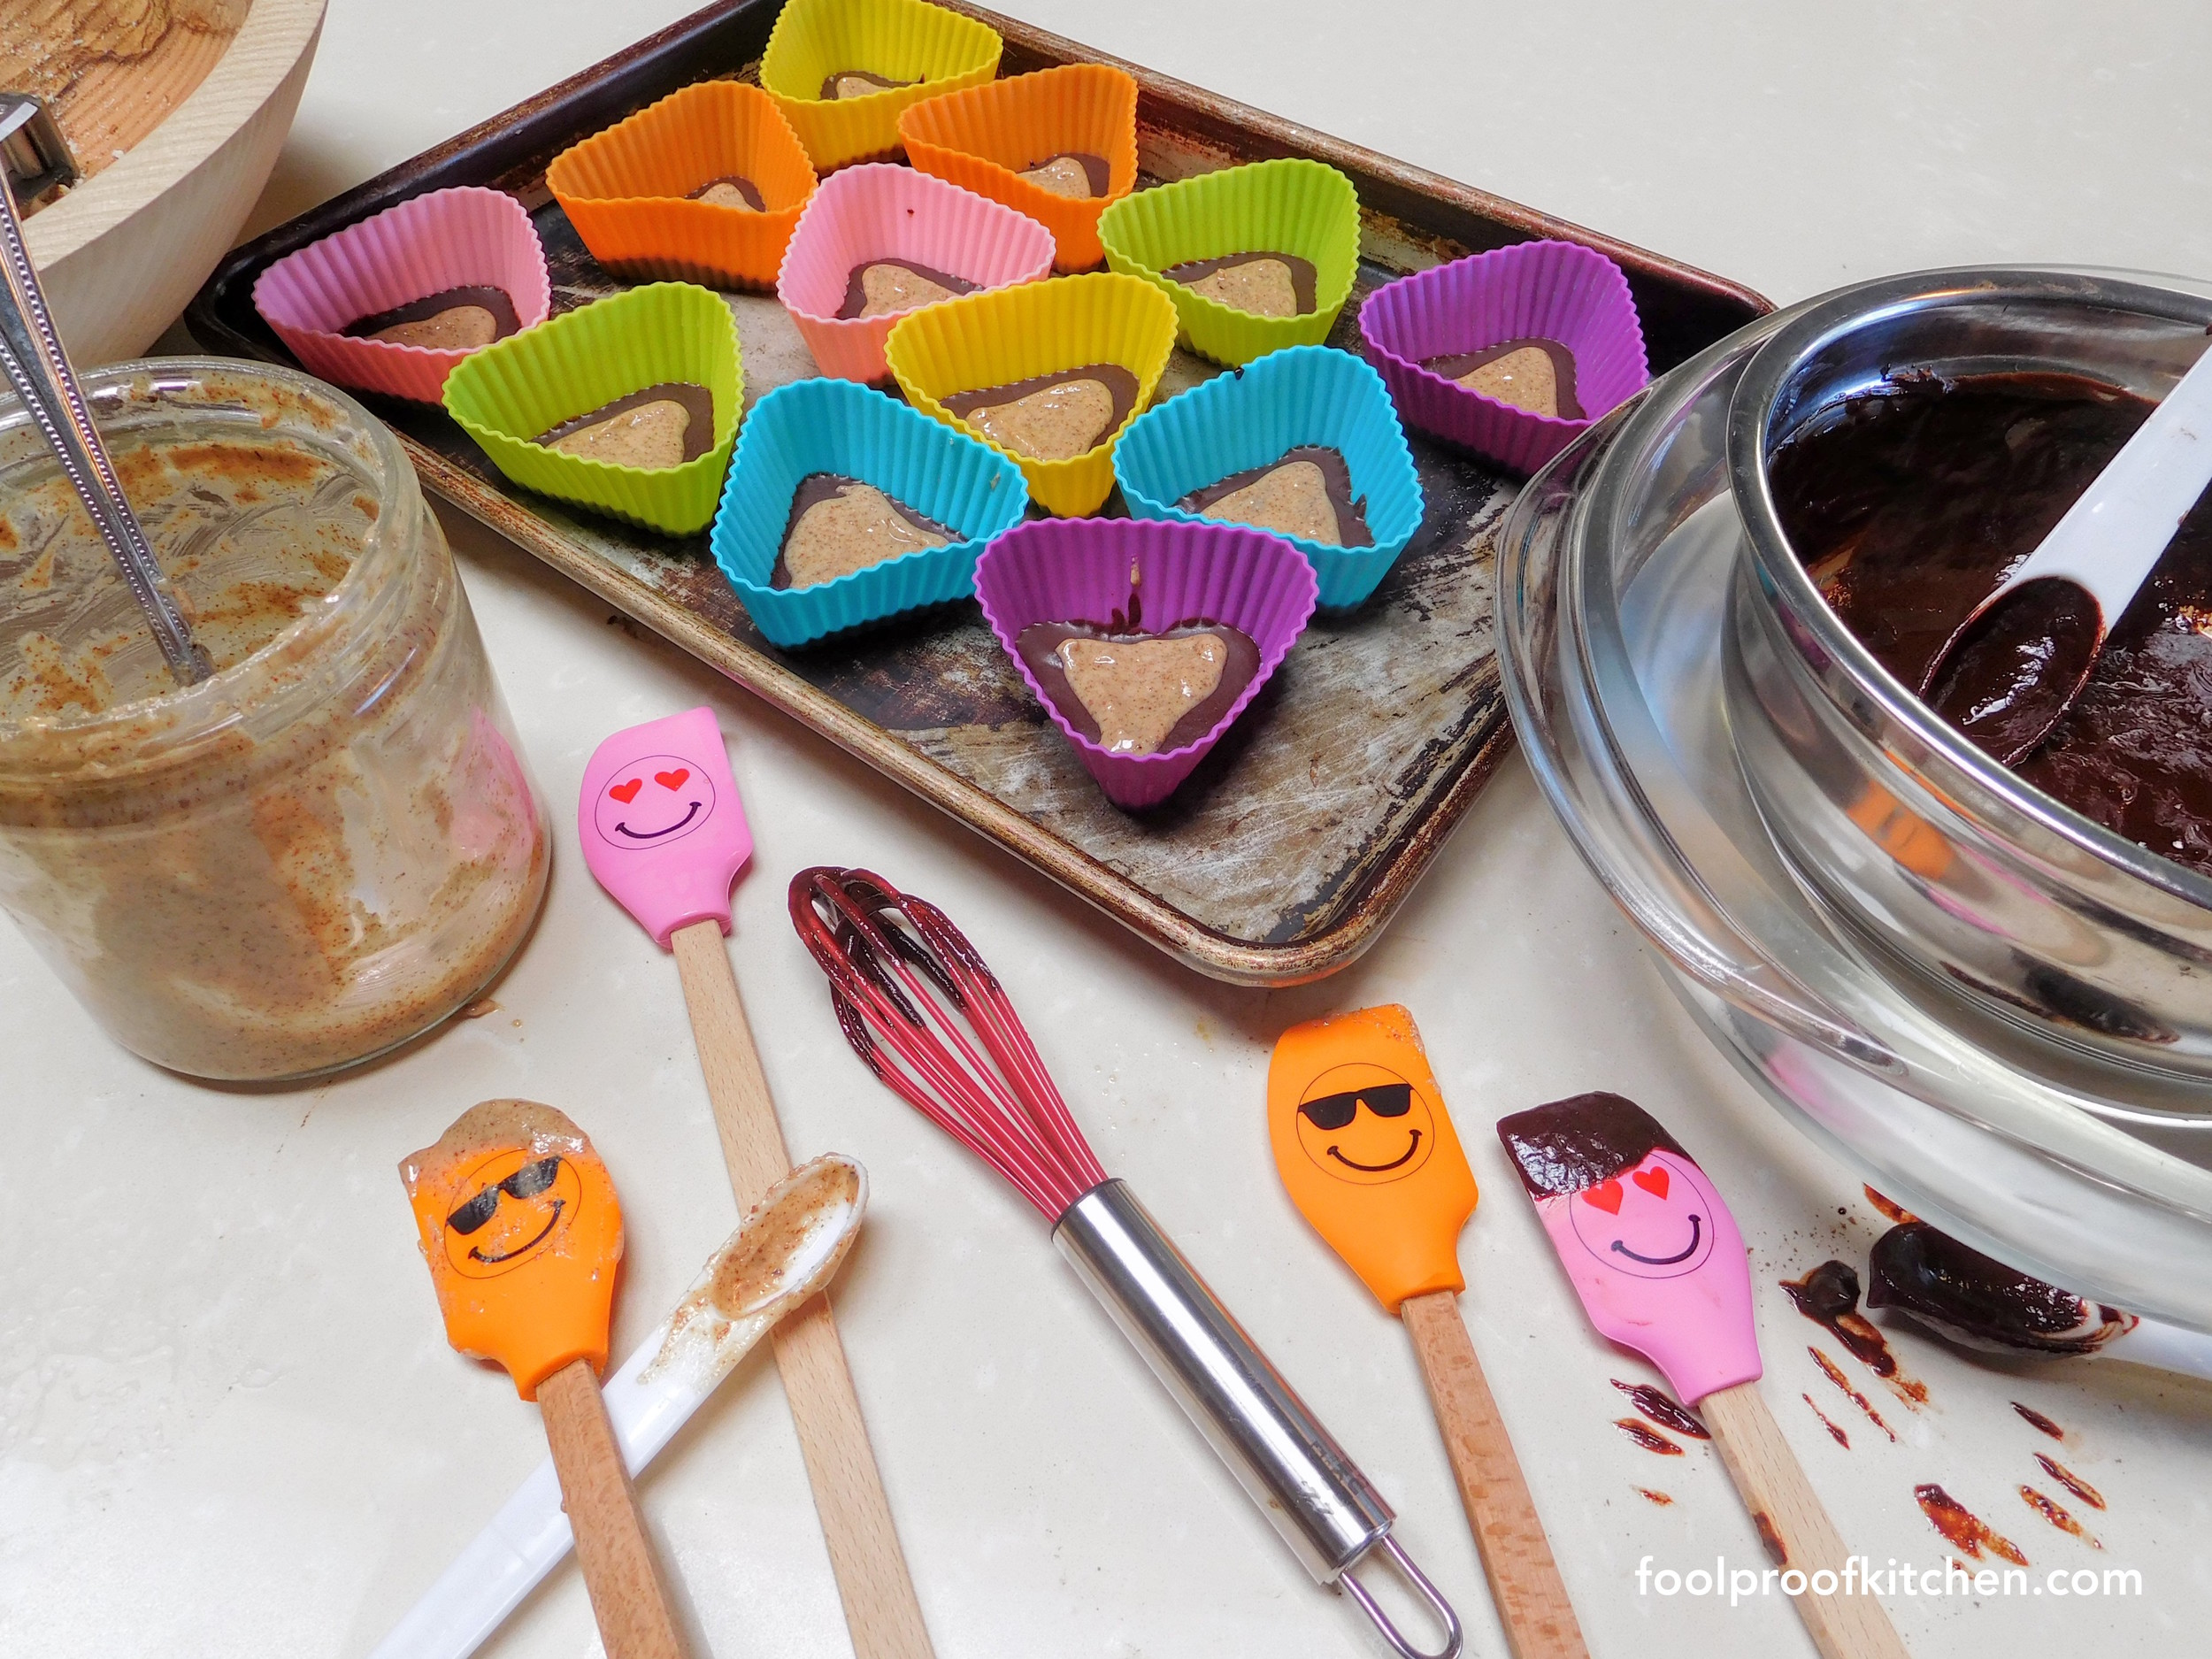 Making chocolates on Vday.  The spatulas had a double date.